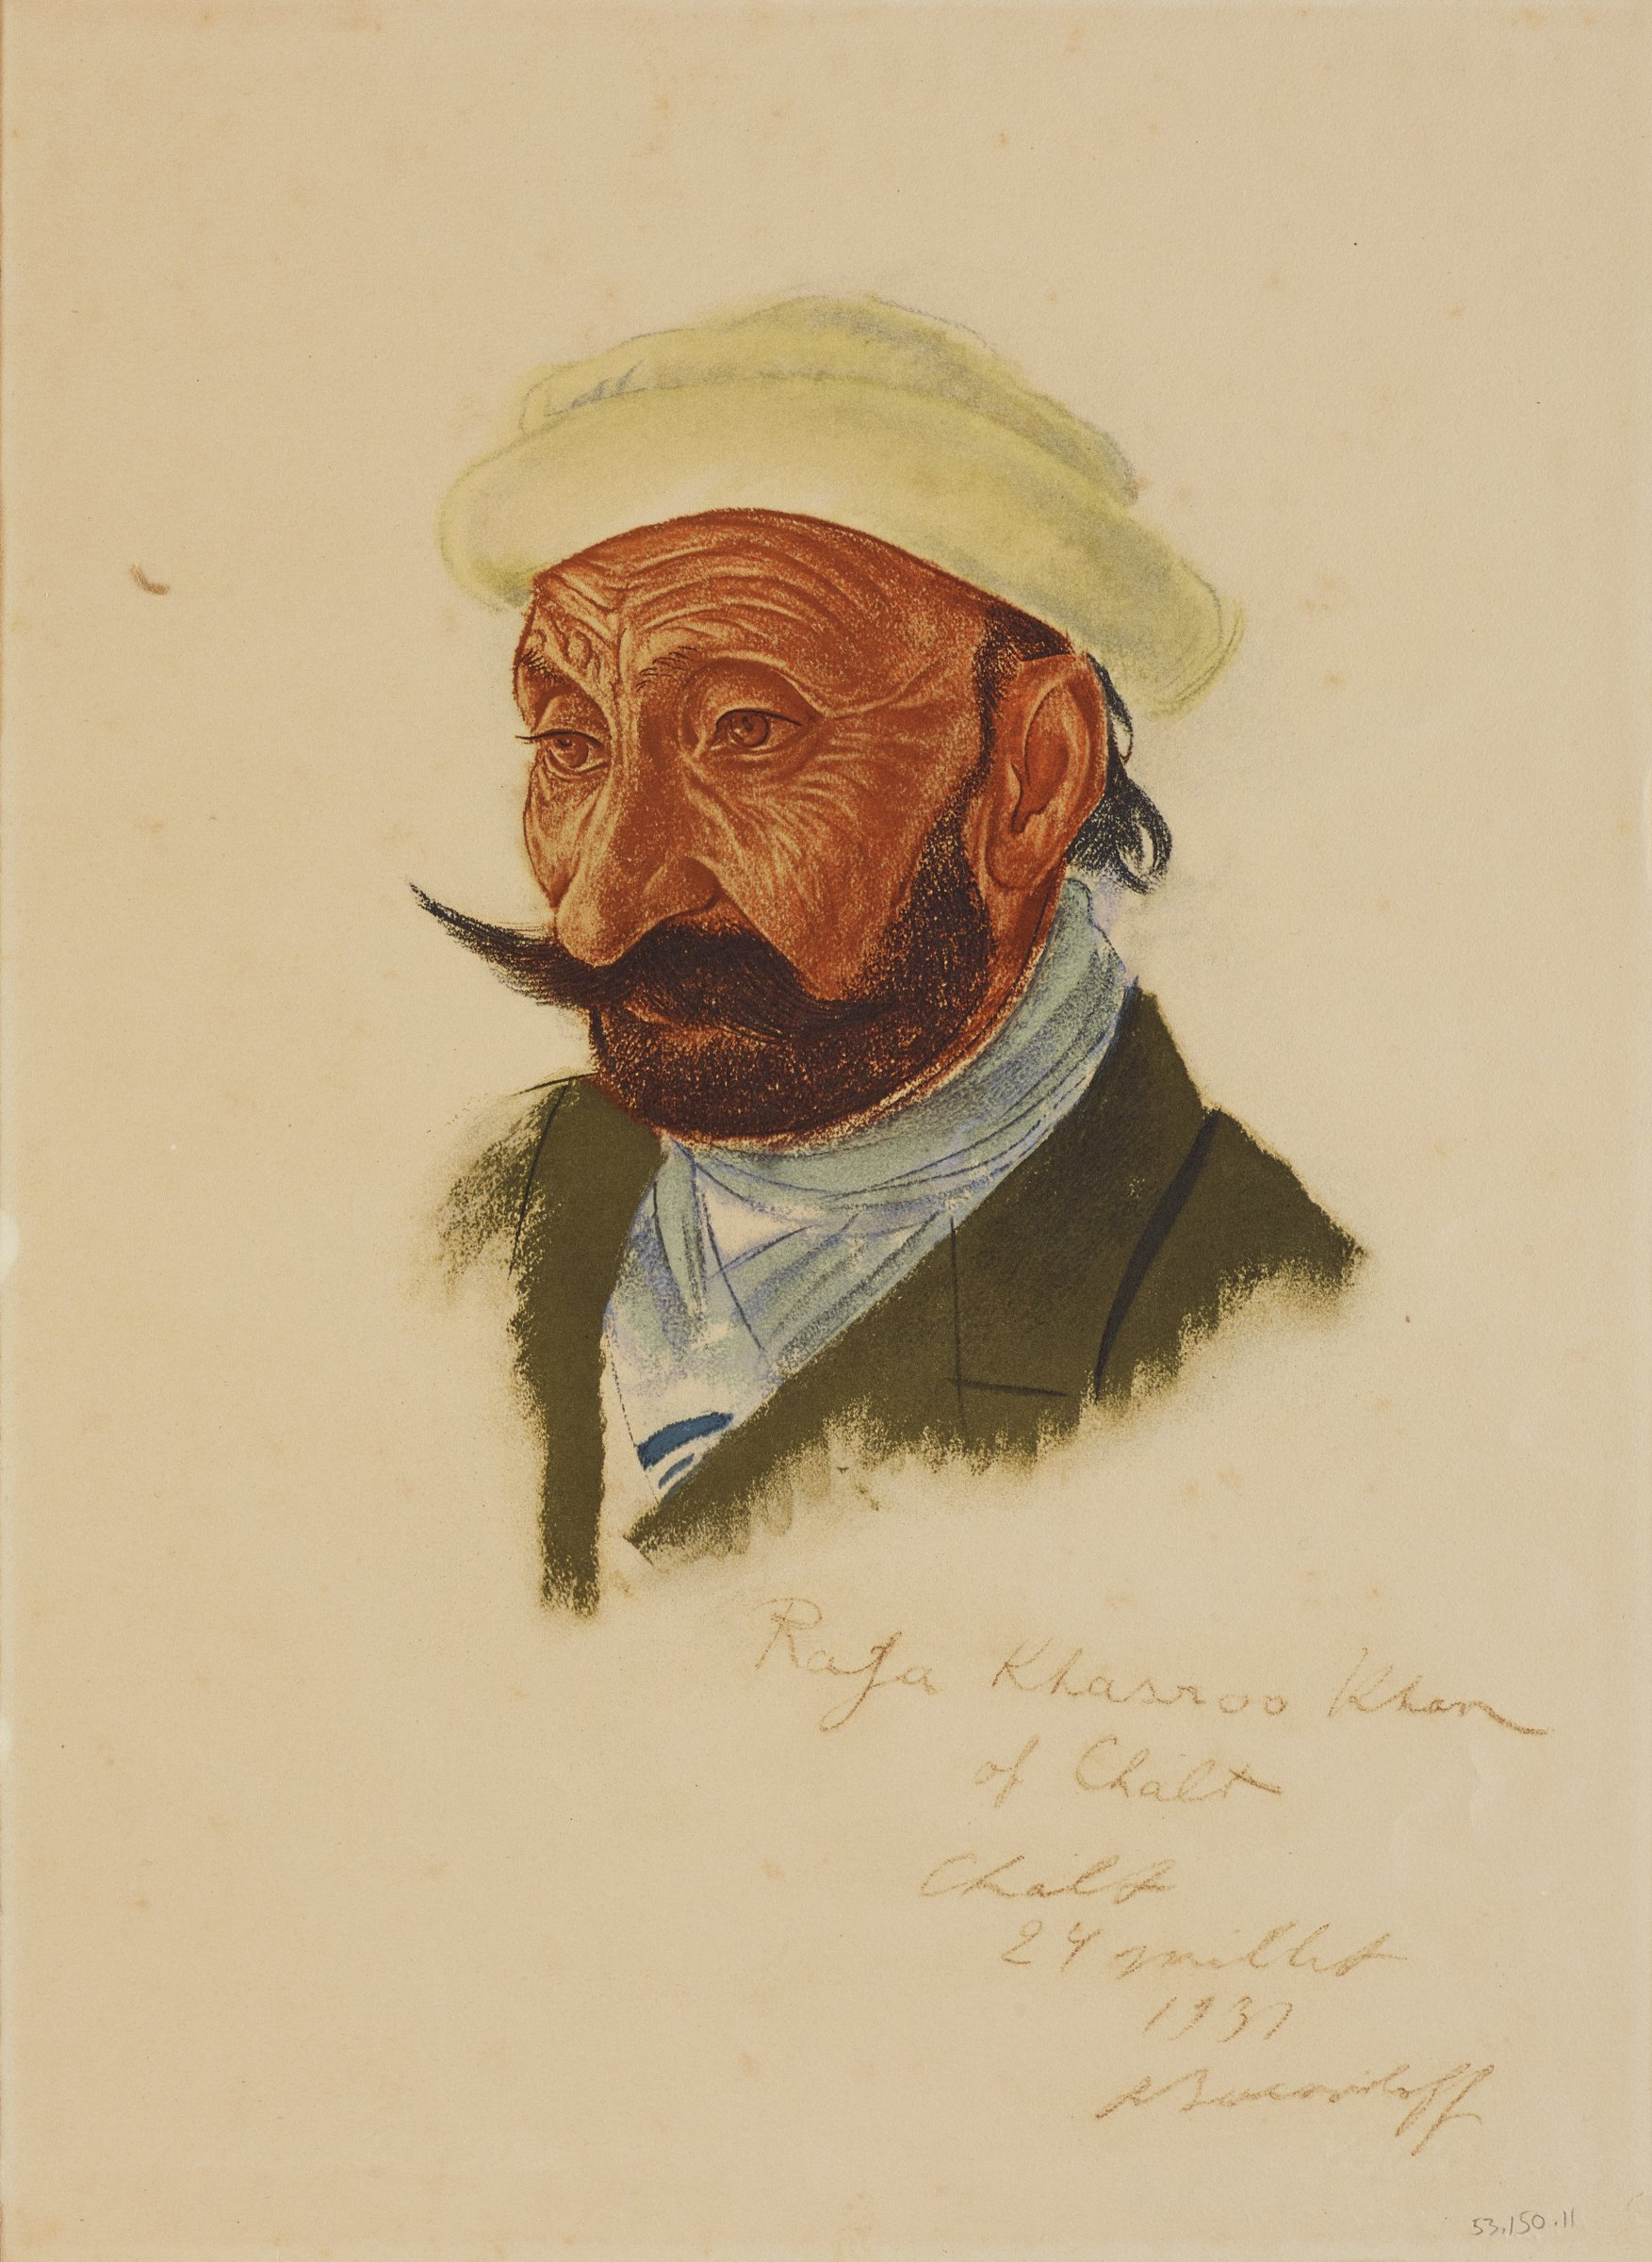 Bust portrait of a male figure with a light yellow hat and green coat with a blue scarf. He has a beard and long mustache. This series is a product of Jacovleff's involvement in the Expédition Citroën Centre-Asie.